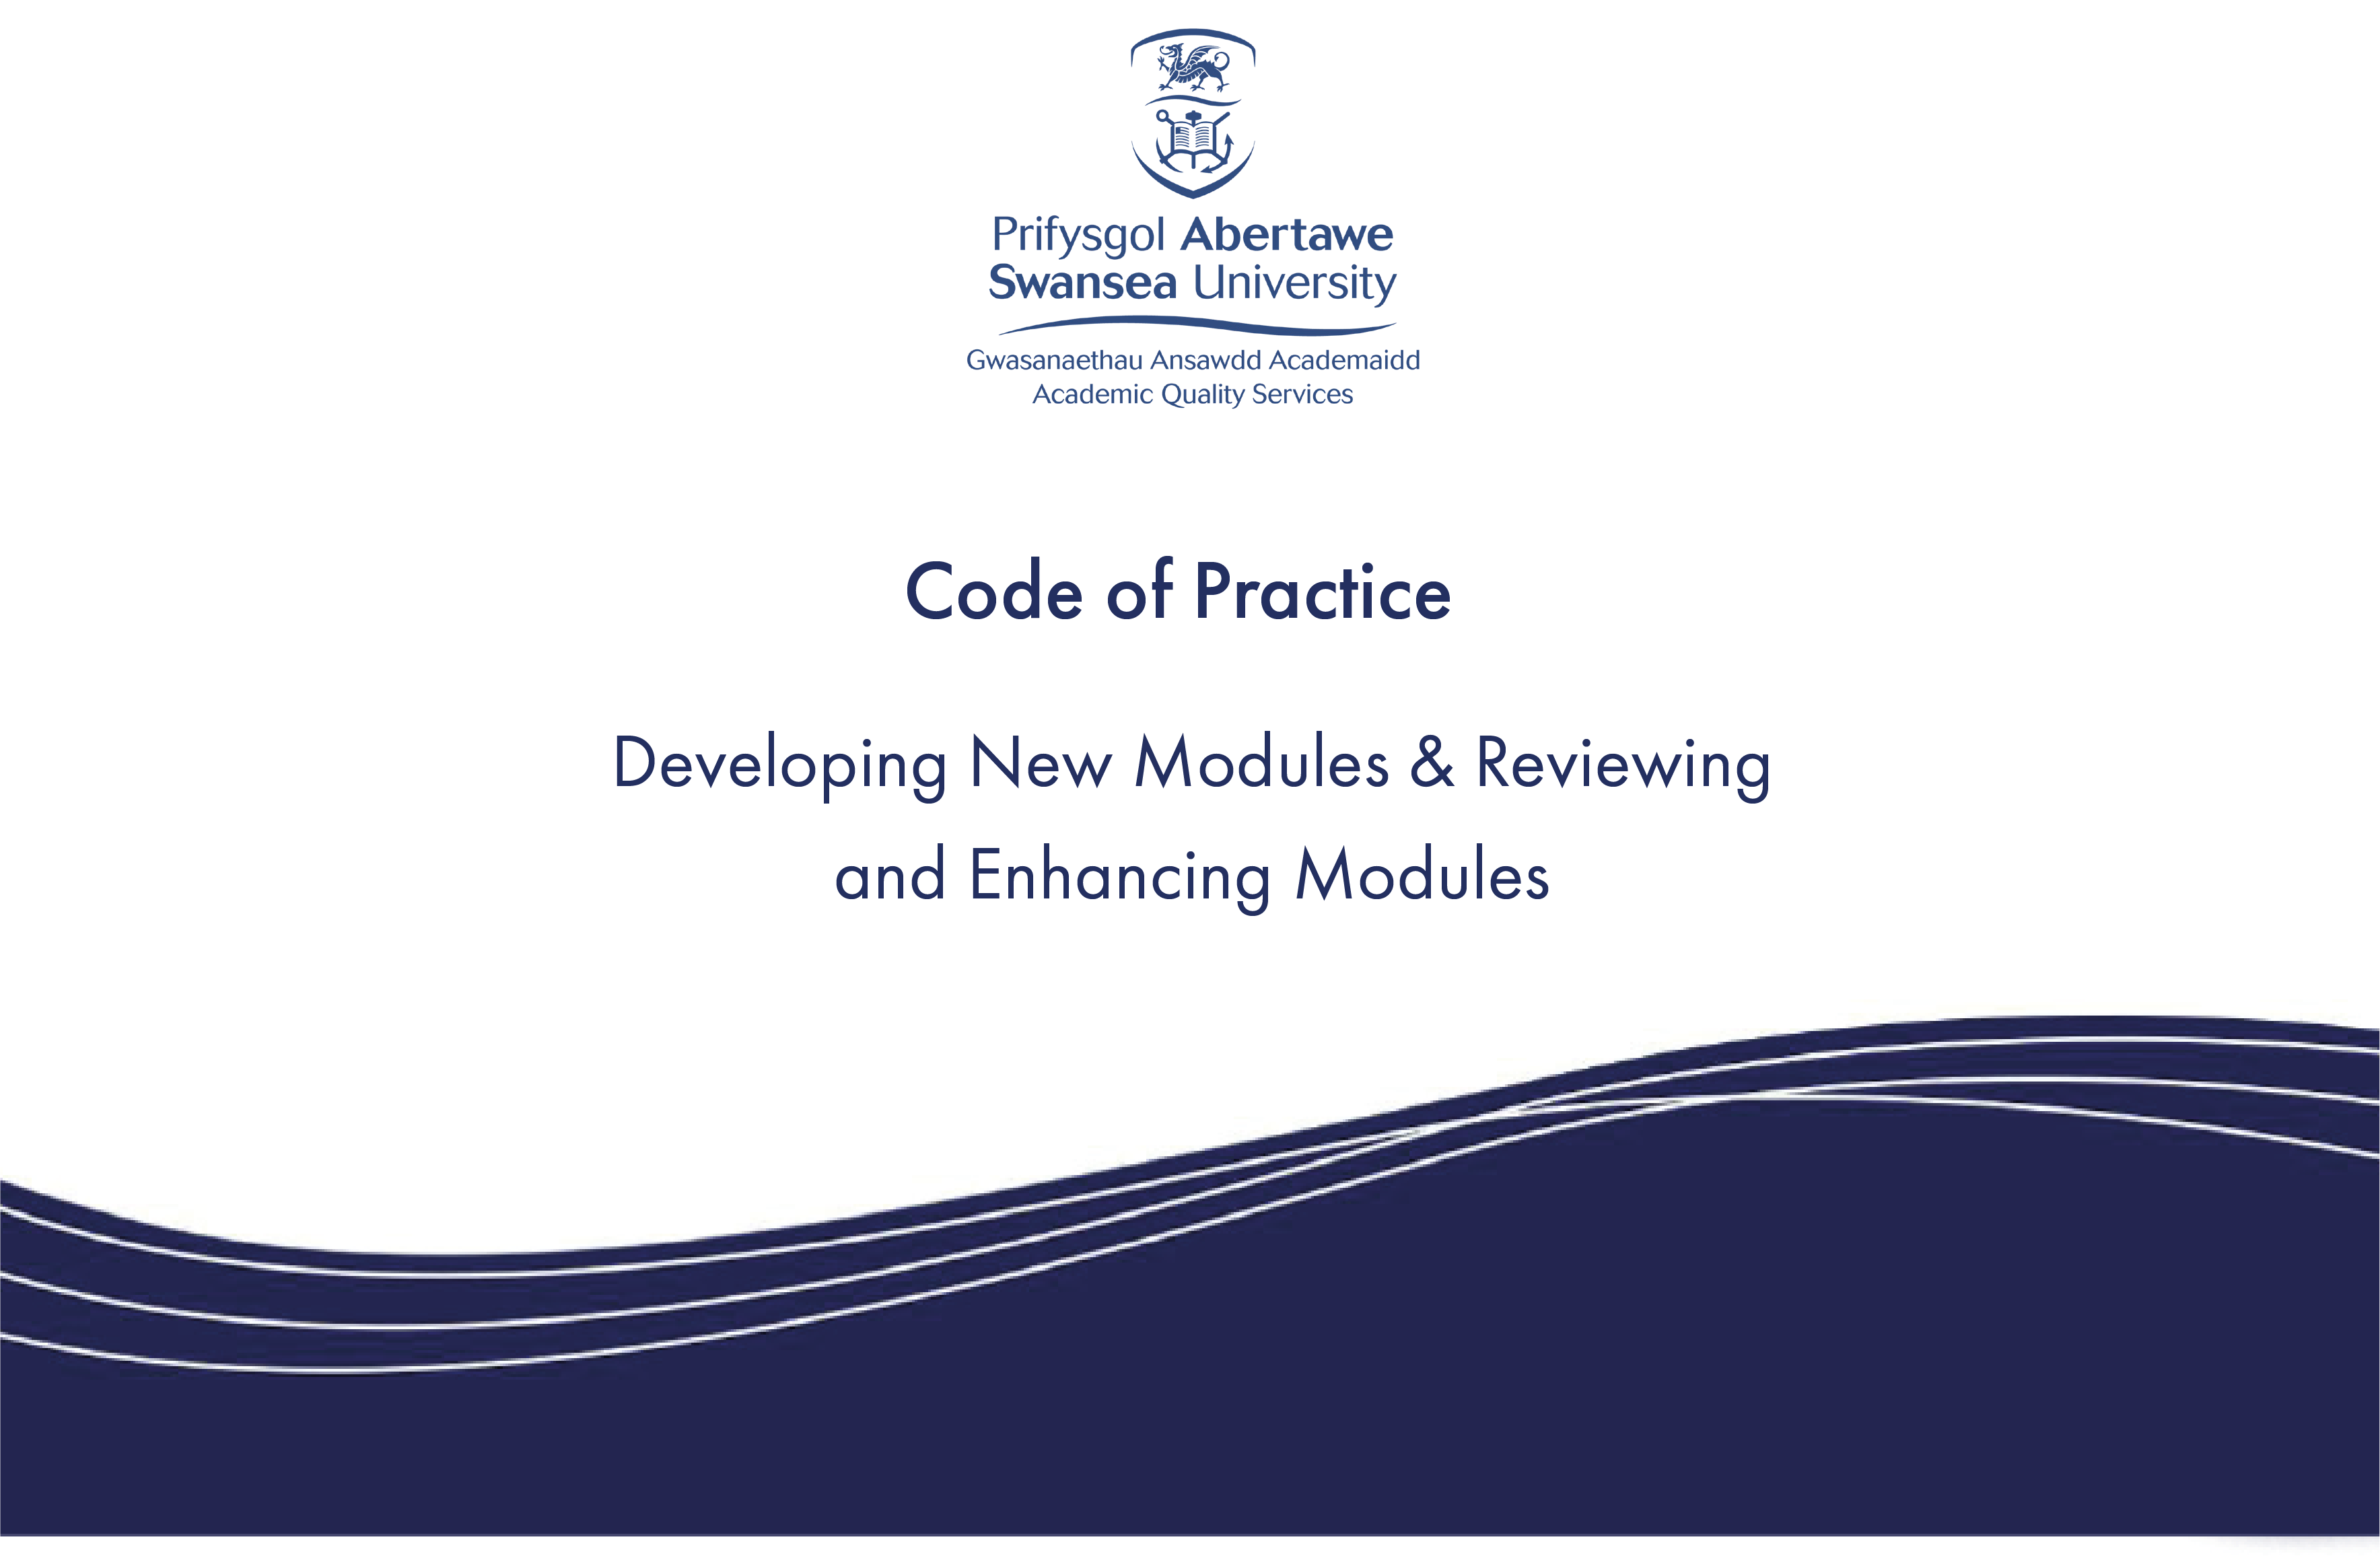 Developing New Modules & Reviewing and Enhancing Modules